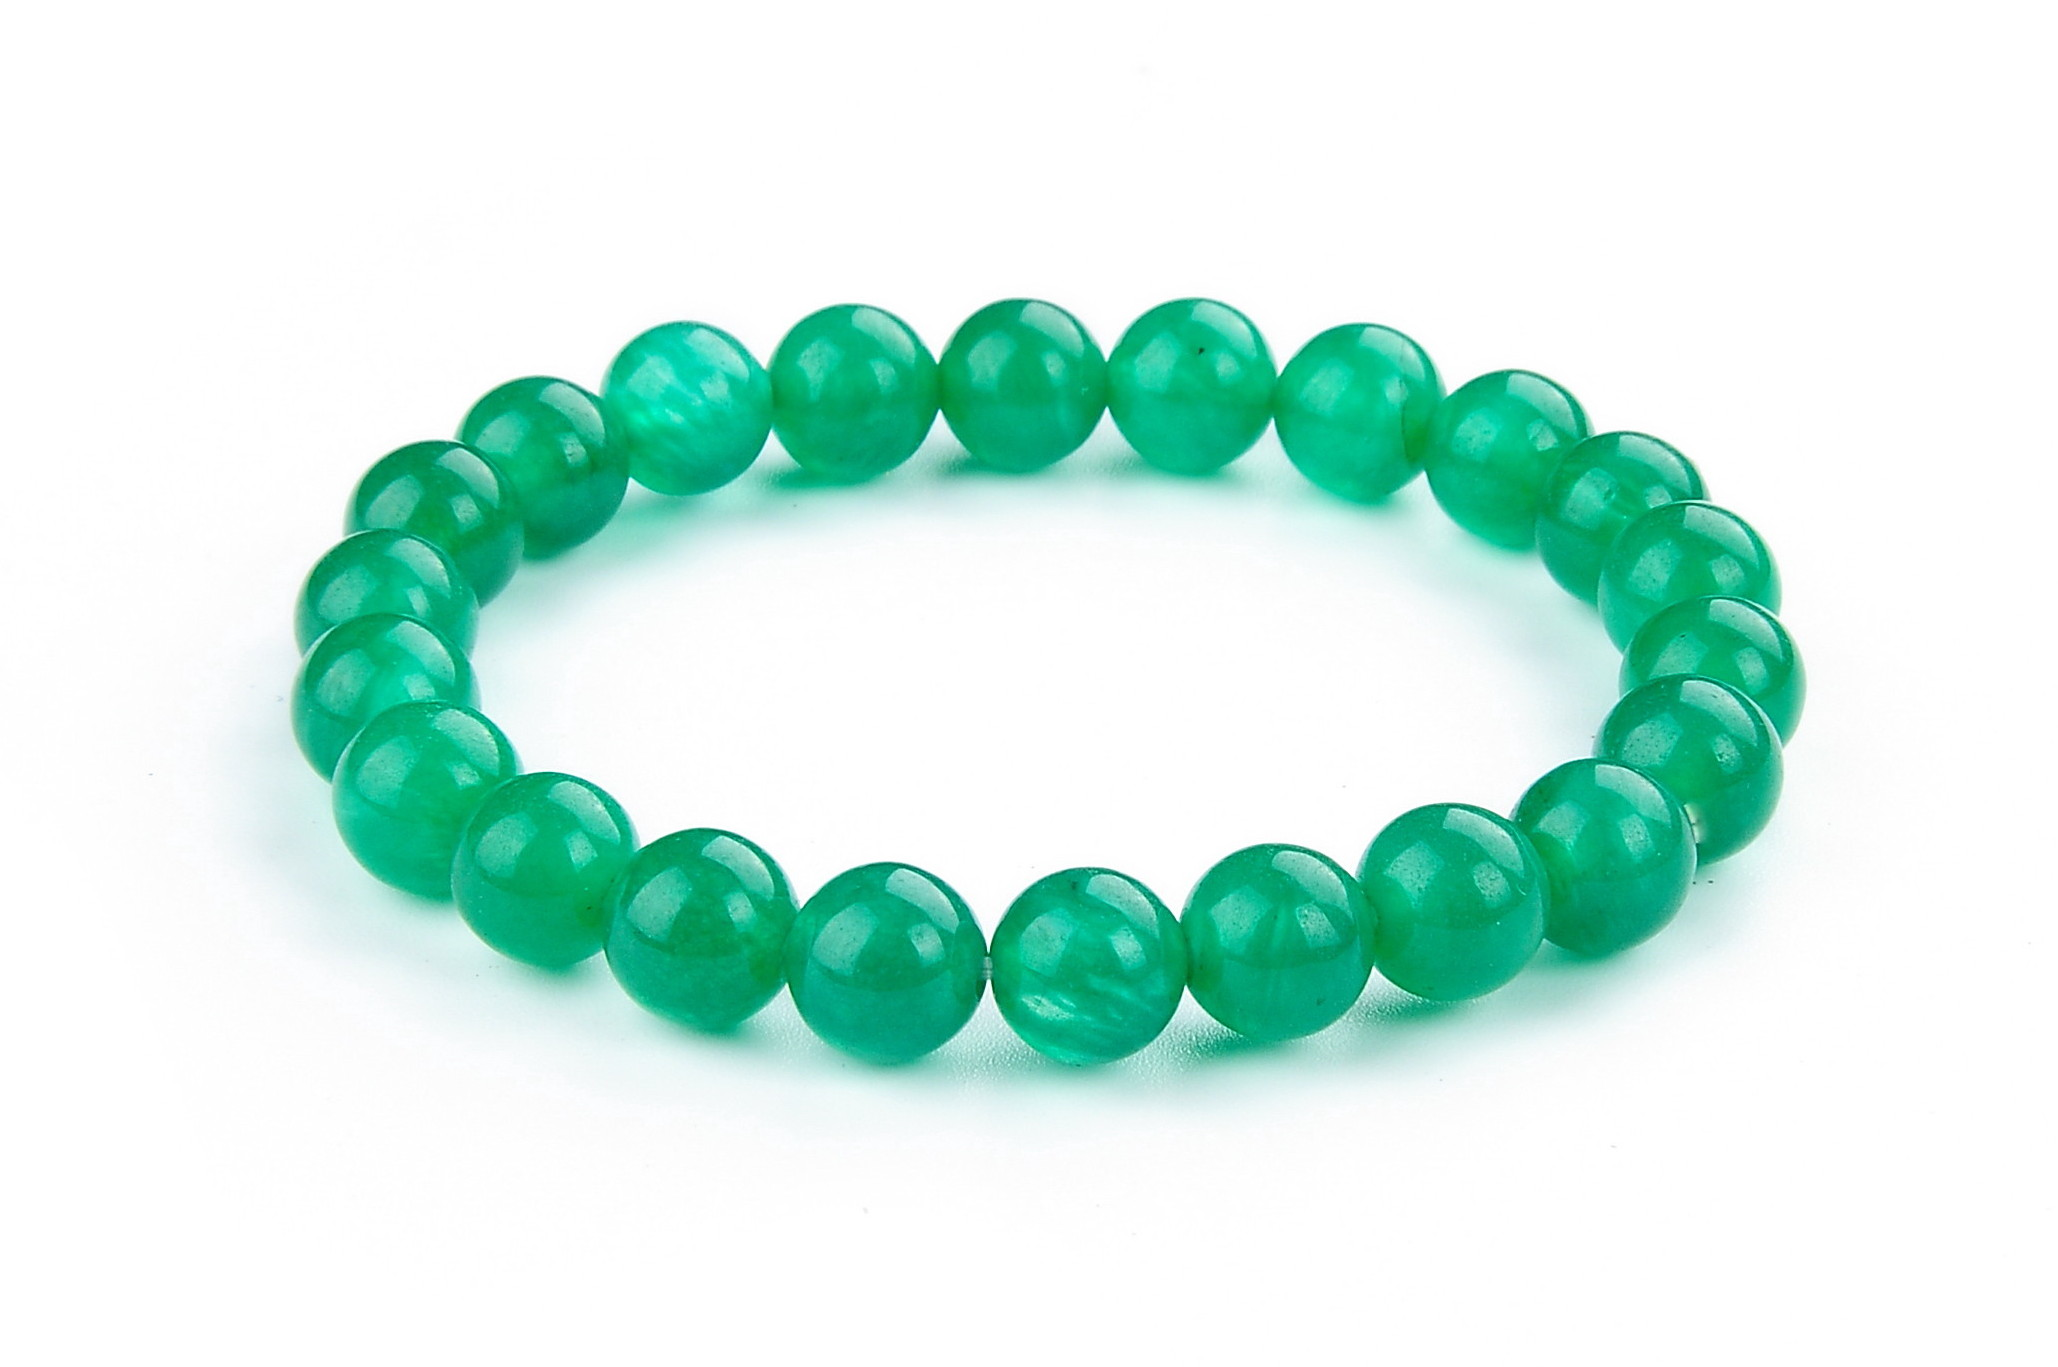 8.5 mm Elastic Green Malay Jade Bracelet  - br-jd6